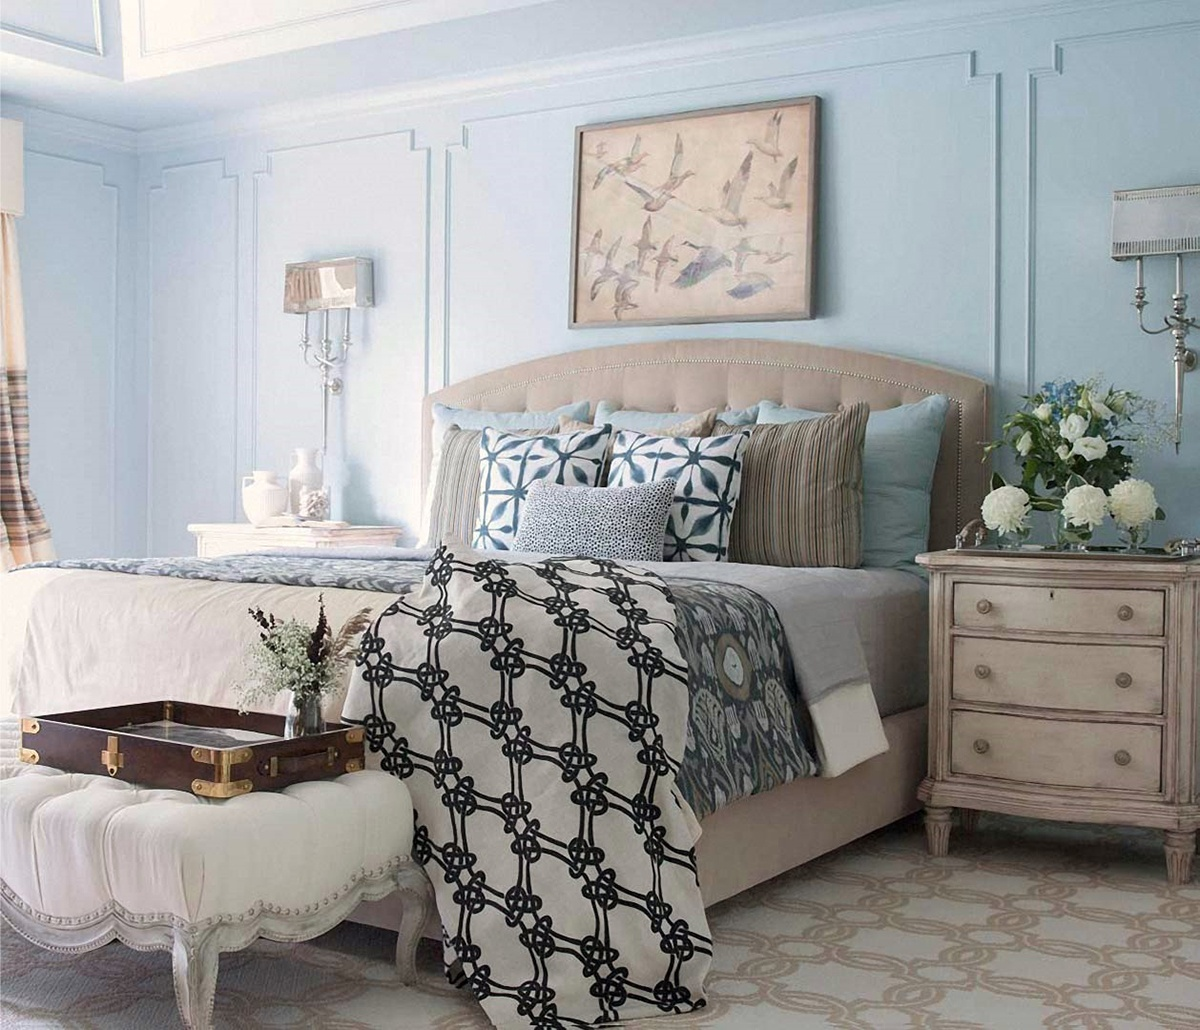 Asmara Designer Rugs Interview Corey Damen Jenkins - Bed Room